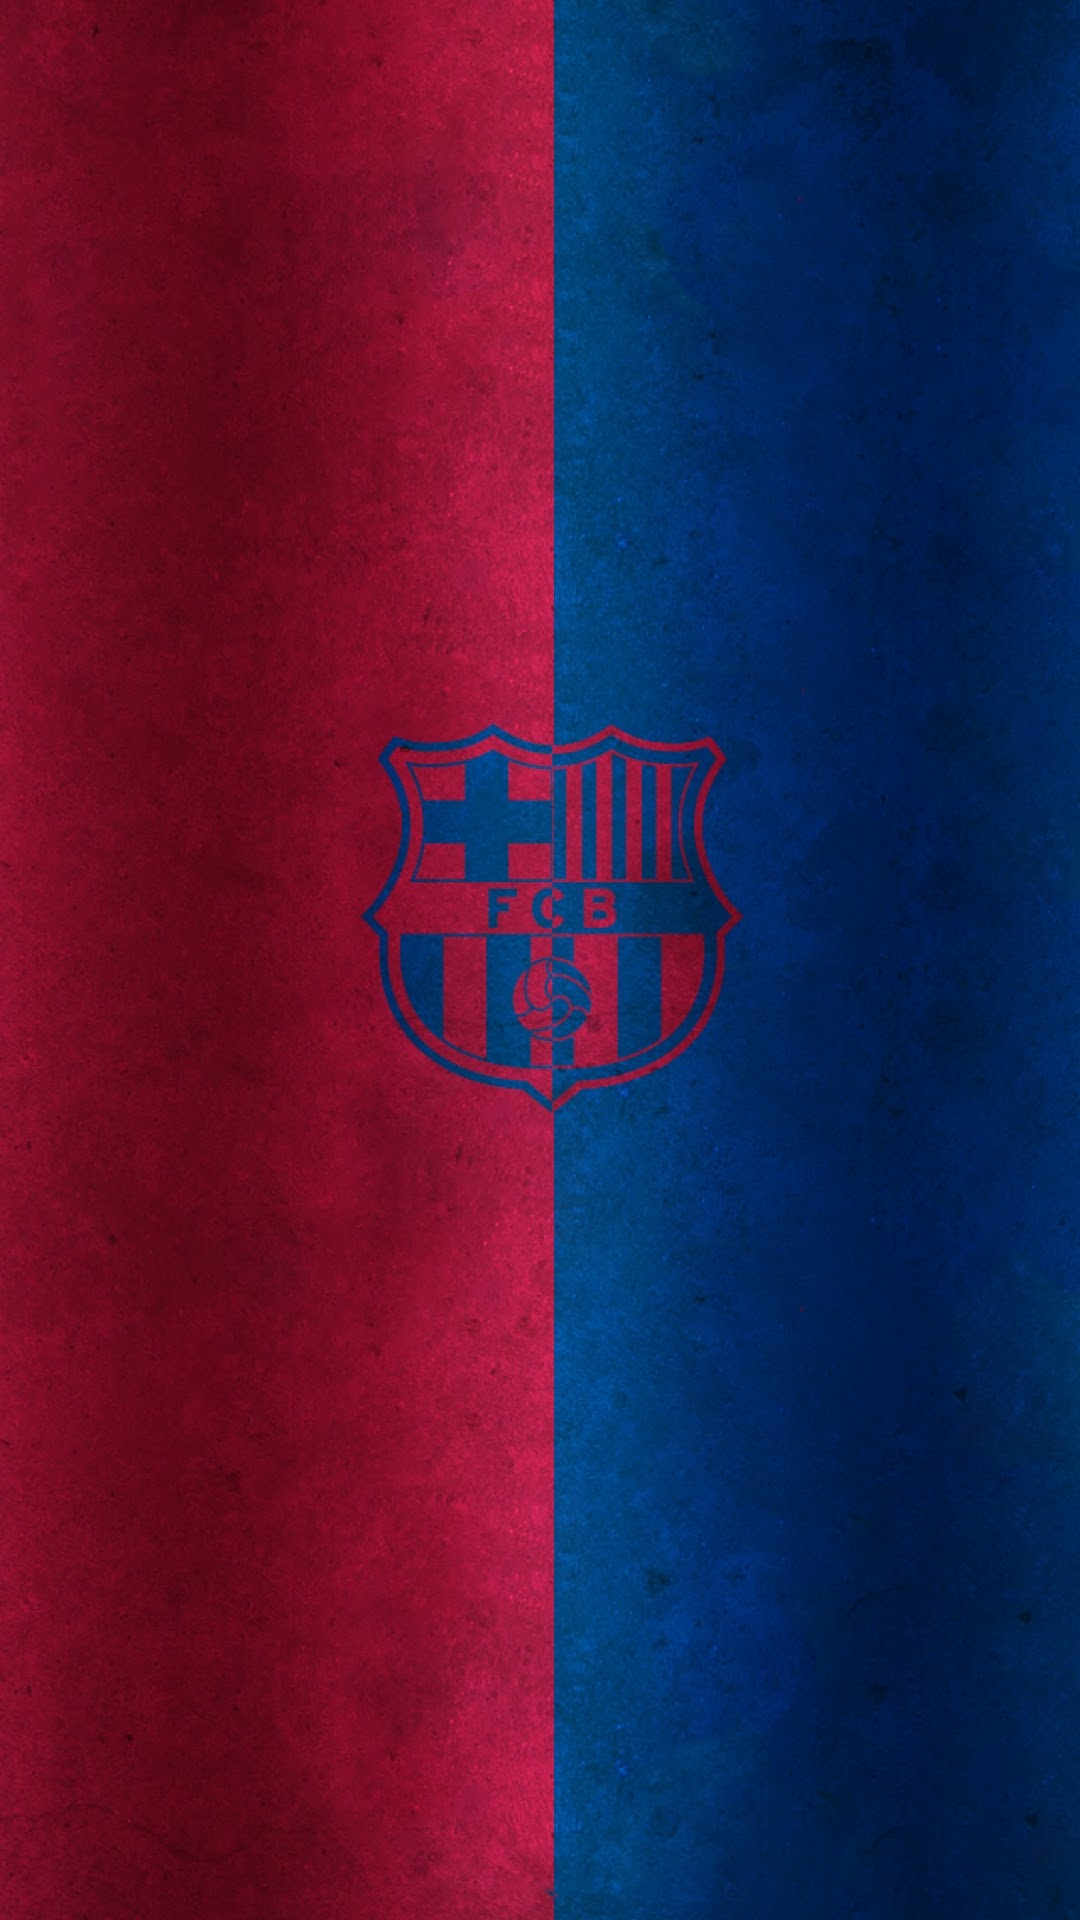 galaxy note hd wallpapers red and blue fc barcelona logo galaxy note hd wallpaper. Black Bedroom Furniture Sets. Home Design Ideas